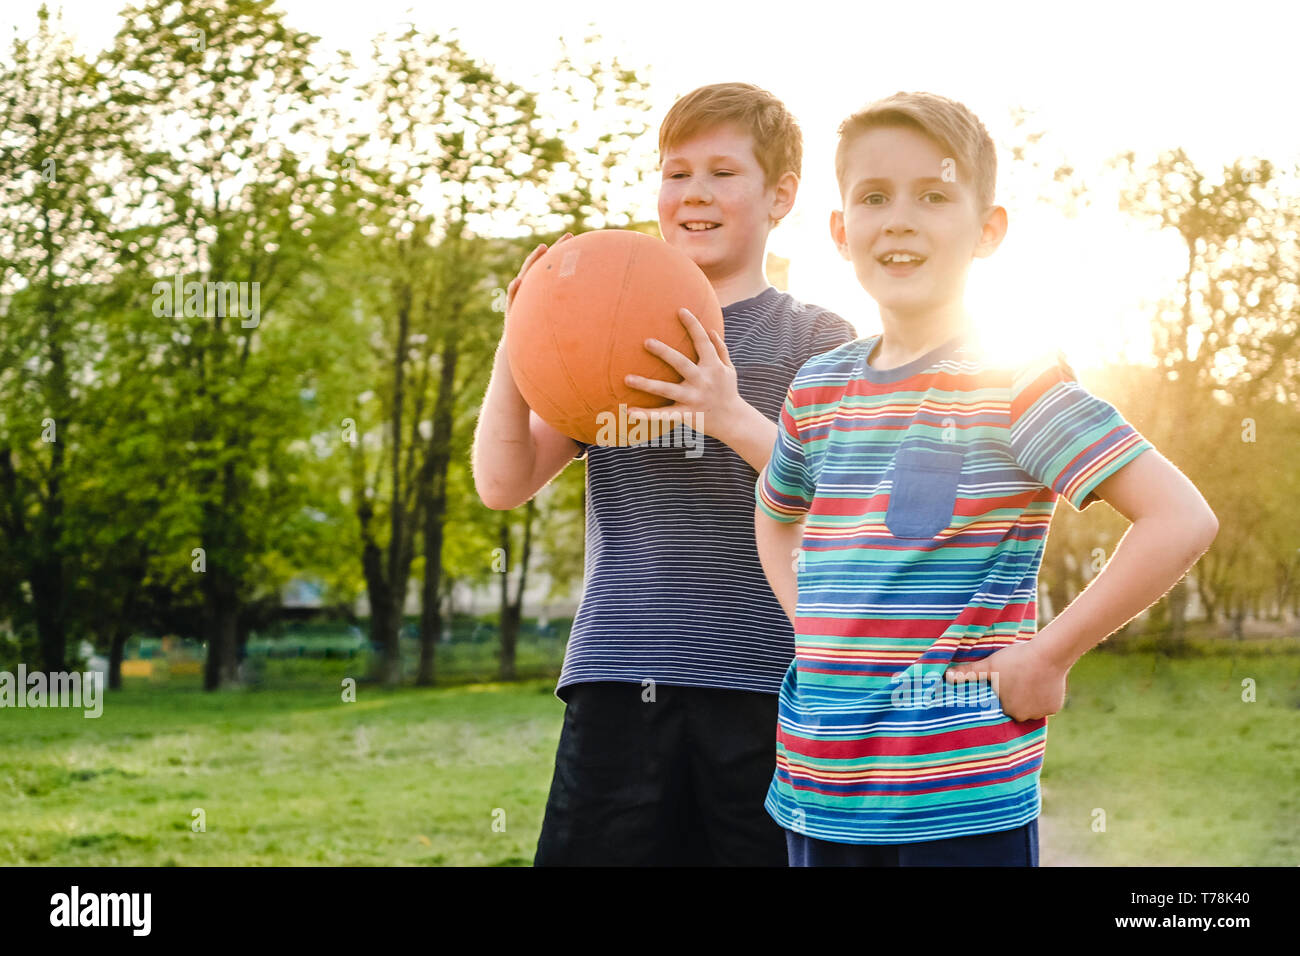 Two happy young boy friends or brothers standing on a rural sports field holding up a basketball with happy grins backlit by the glow of the setting s - Stock Image